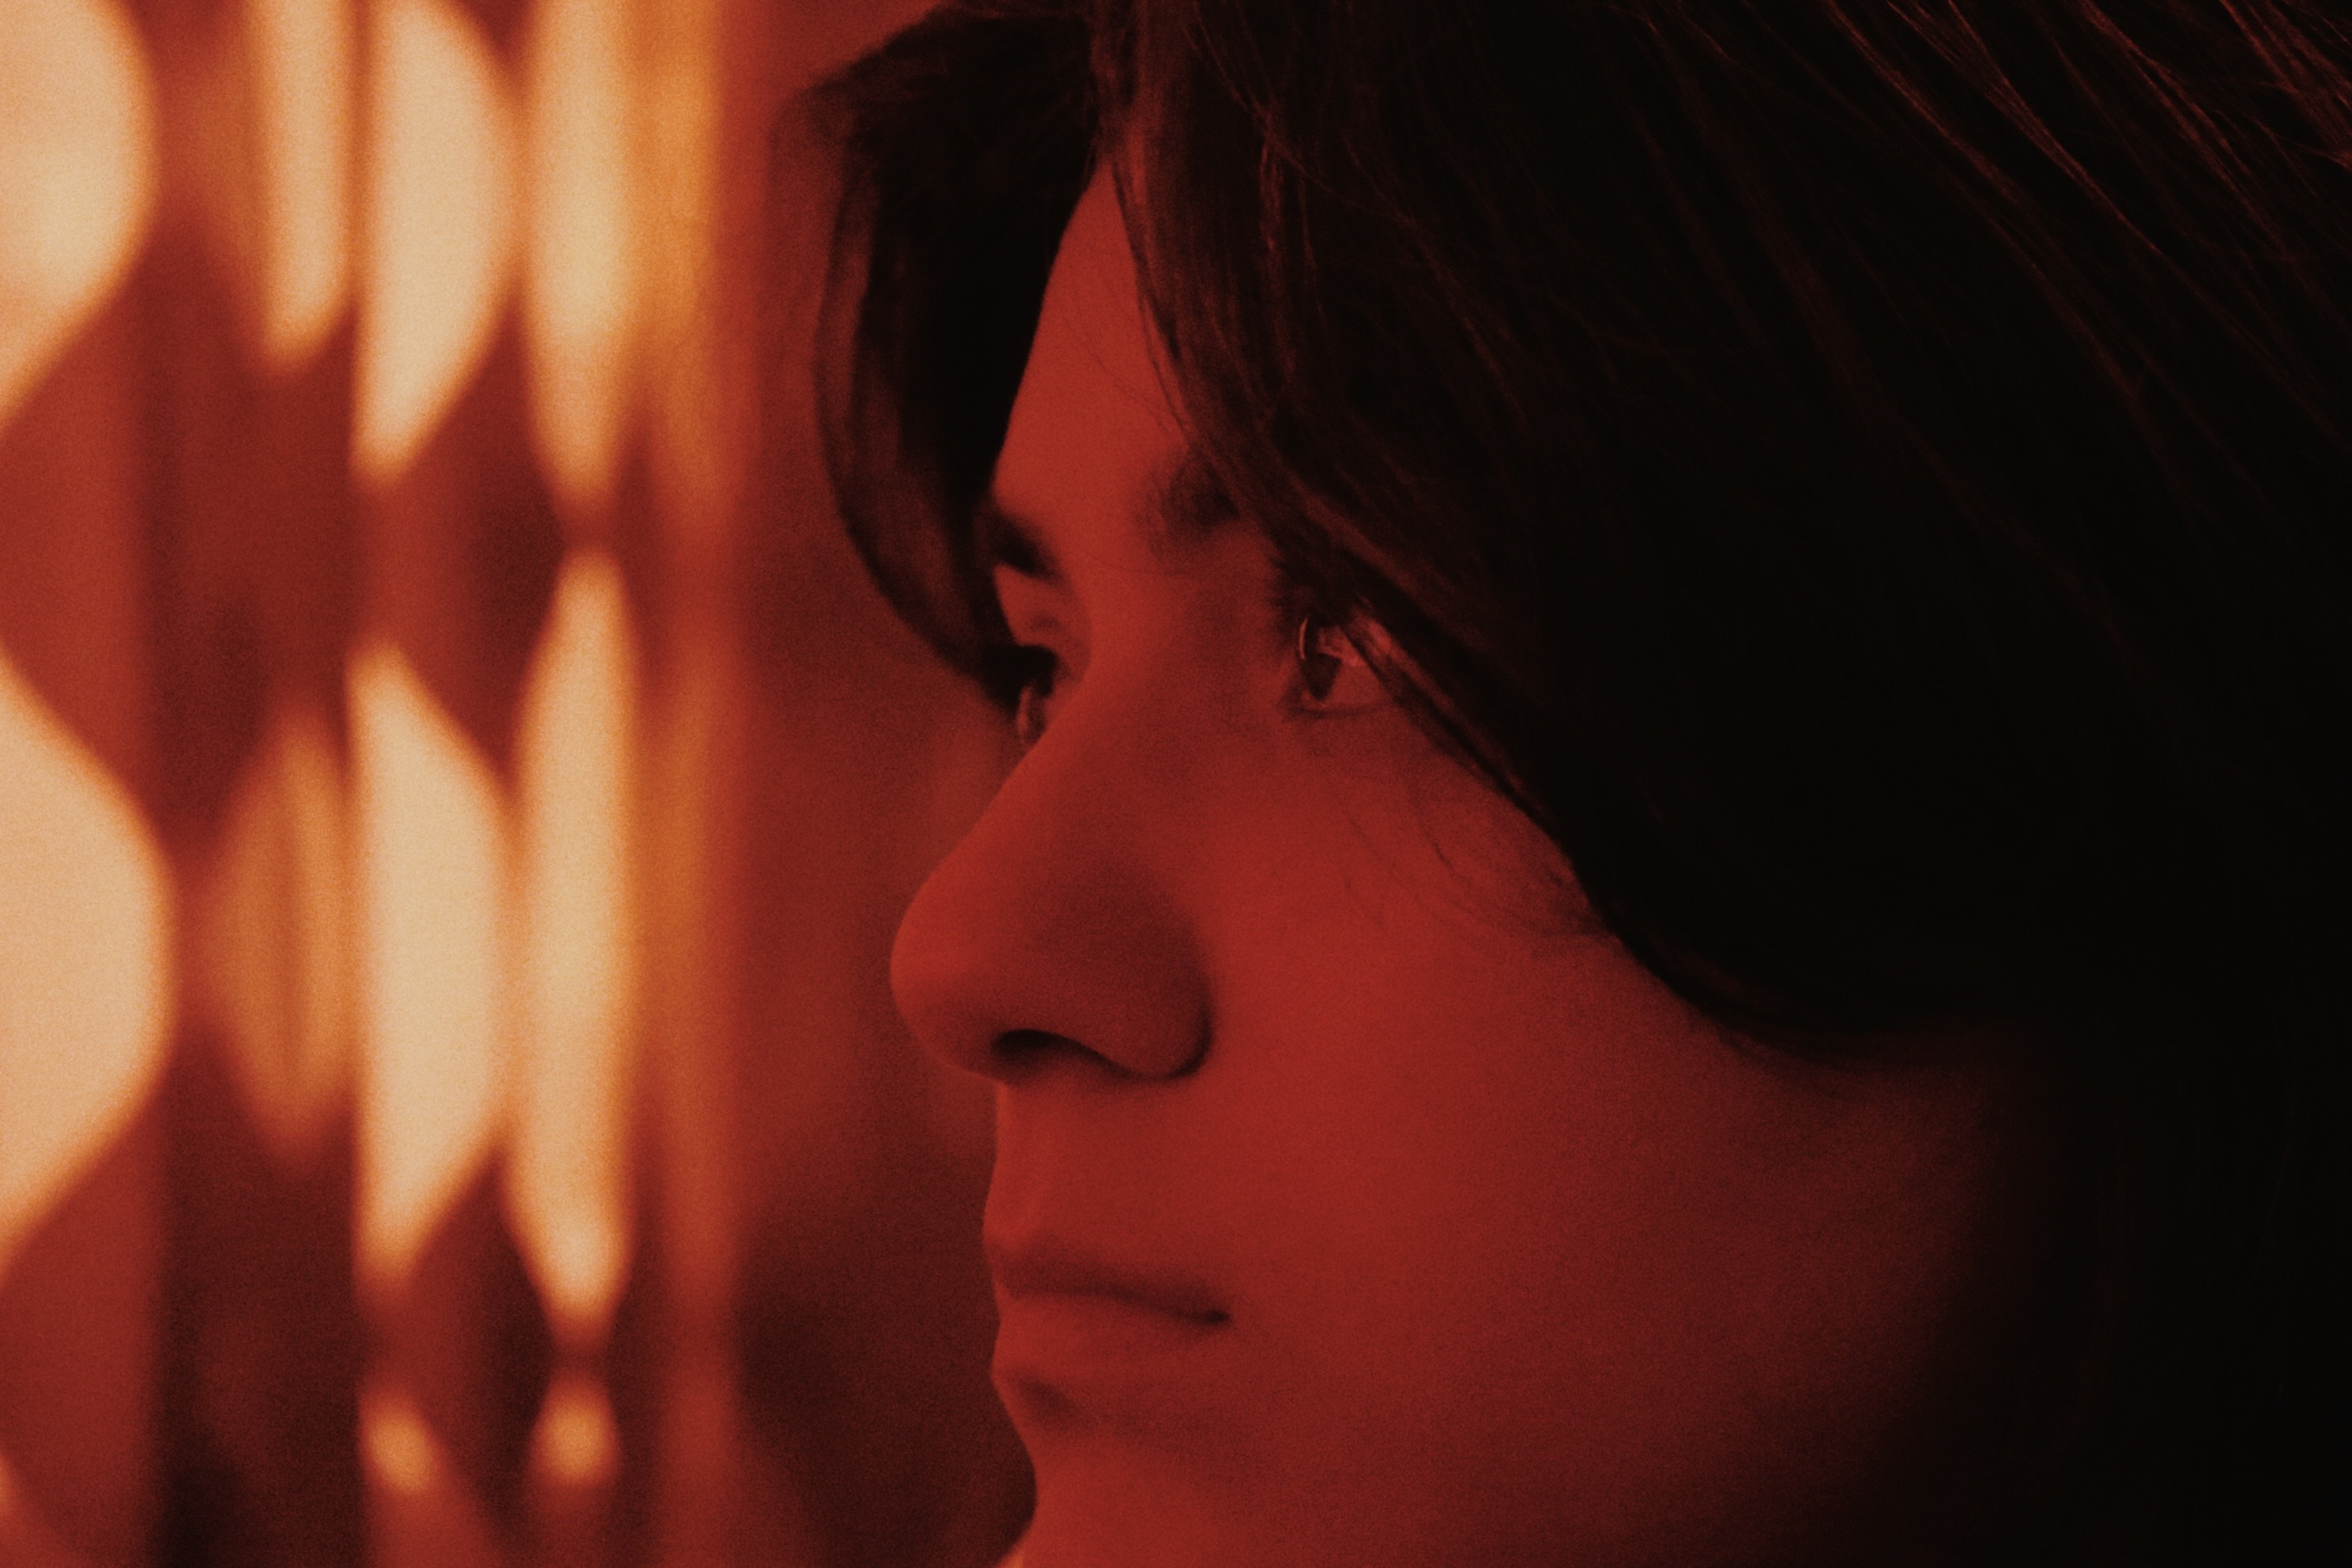 close up of a woman's face with an orange light.